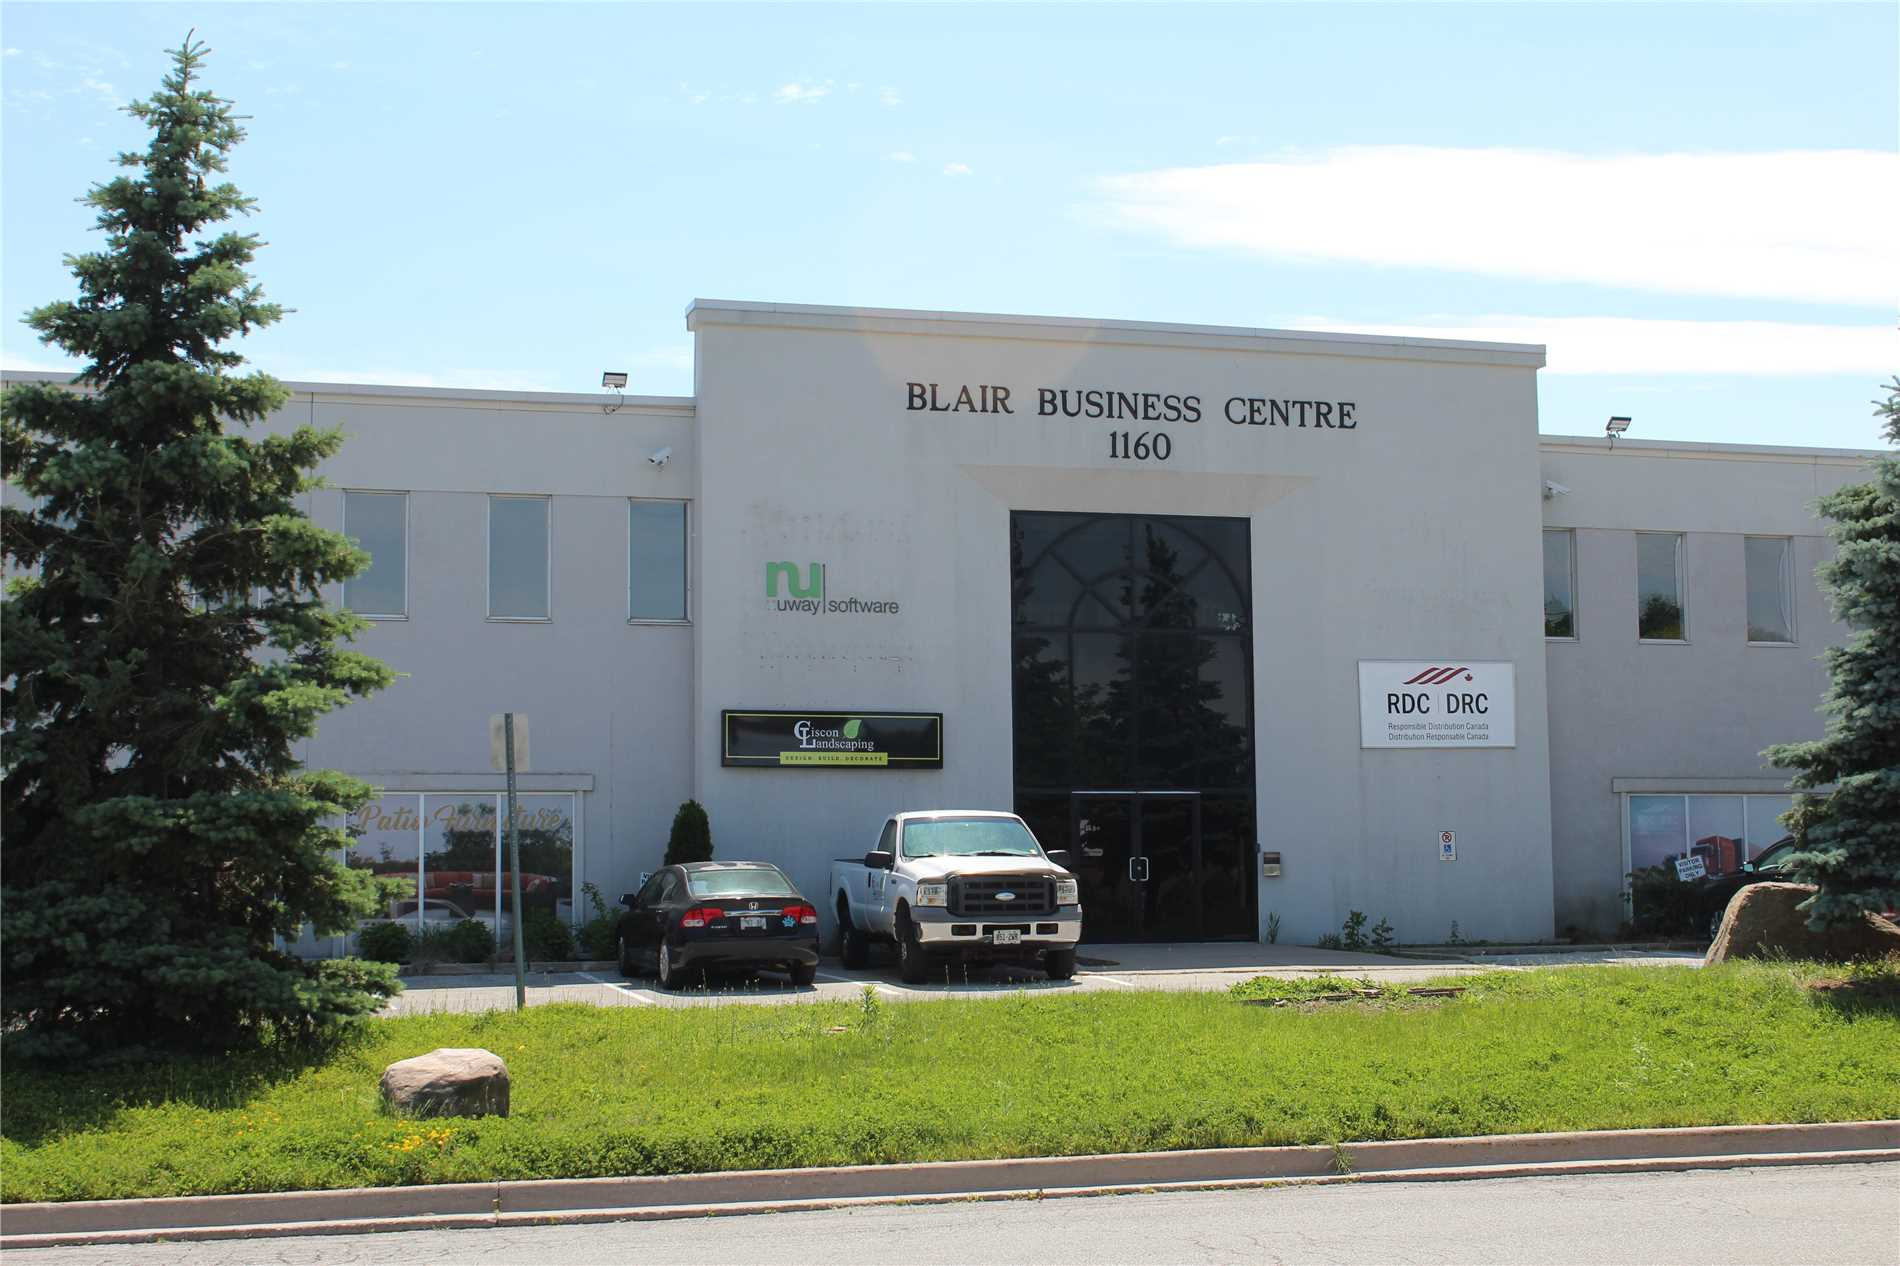 Burlington Center Location! Great Value,Utilities Included In Rent. Divisible Office Space At Blair Business Centre. Excellent Access To Qew&Numerous Amenities,Lots Of Natural Lights Corner Unit W Windows On Both Sides, Great Multiple Mix Of Tenants, Plenty Of Parking. Ge1 Zoning Permits A Wide Range Of Uses Ideal For Tutoring,Professional Offices..Etc. Other Office Spaces&Rare Small Industrial Unit With Truck Level Also Available In The Building If Required.